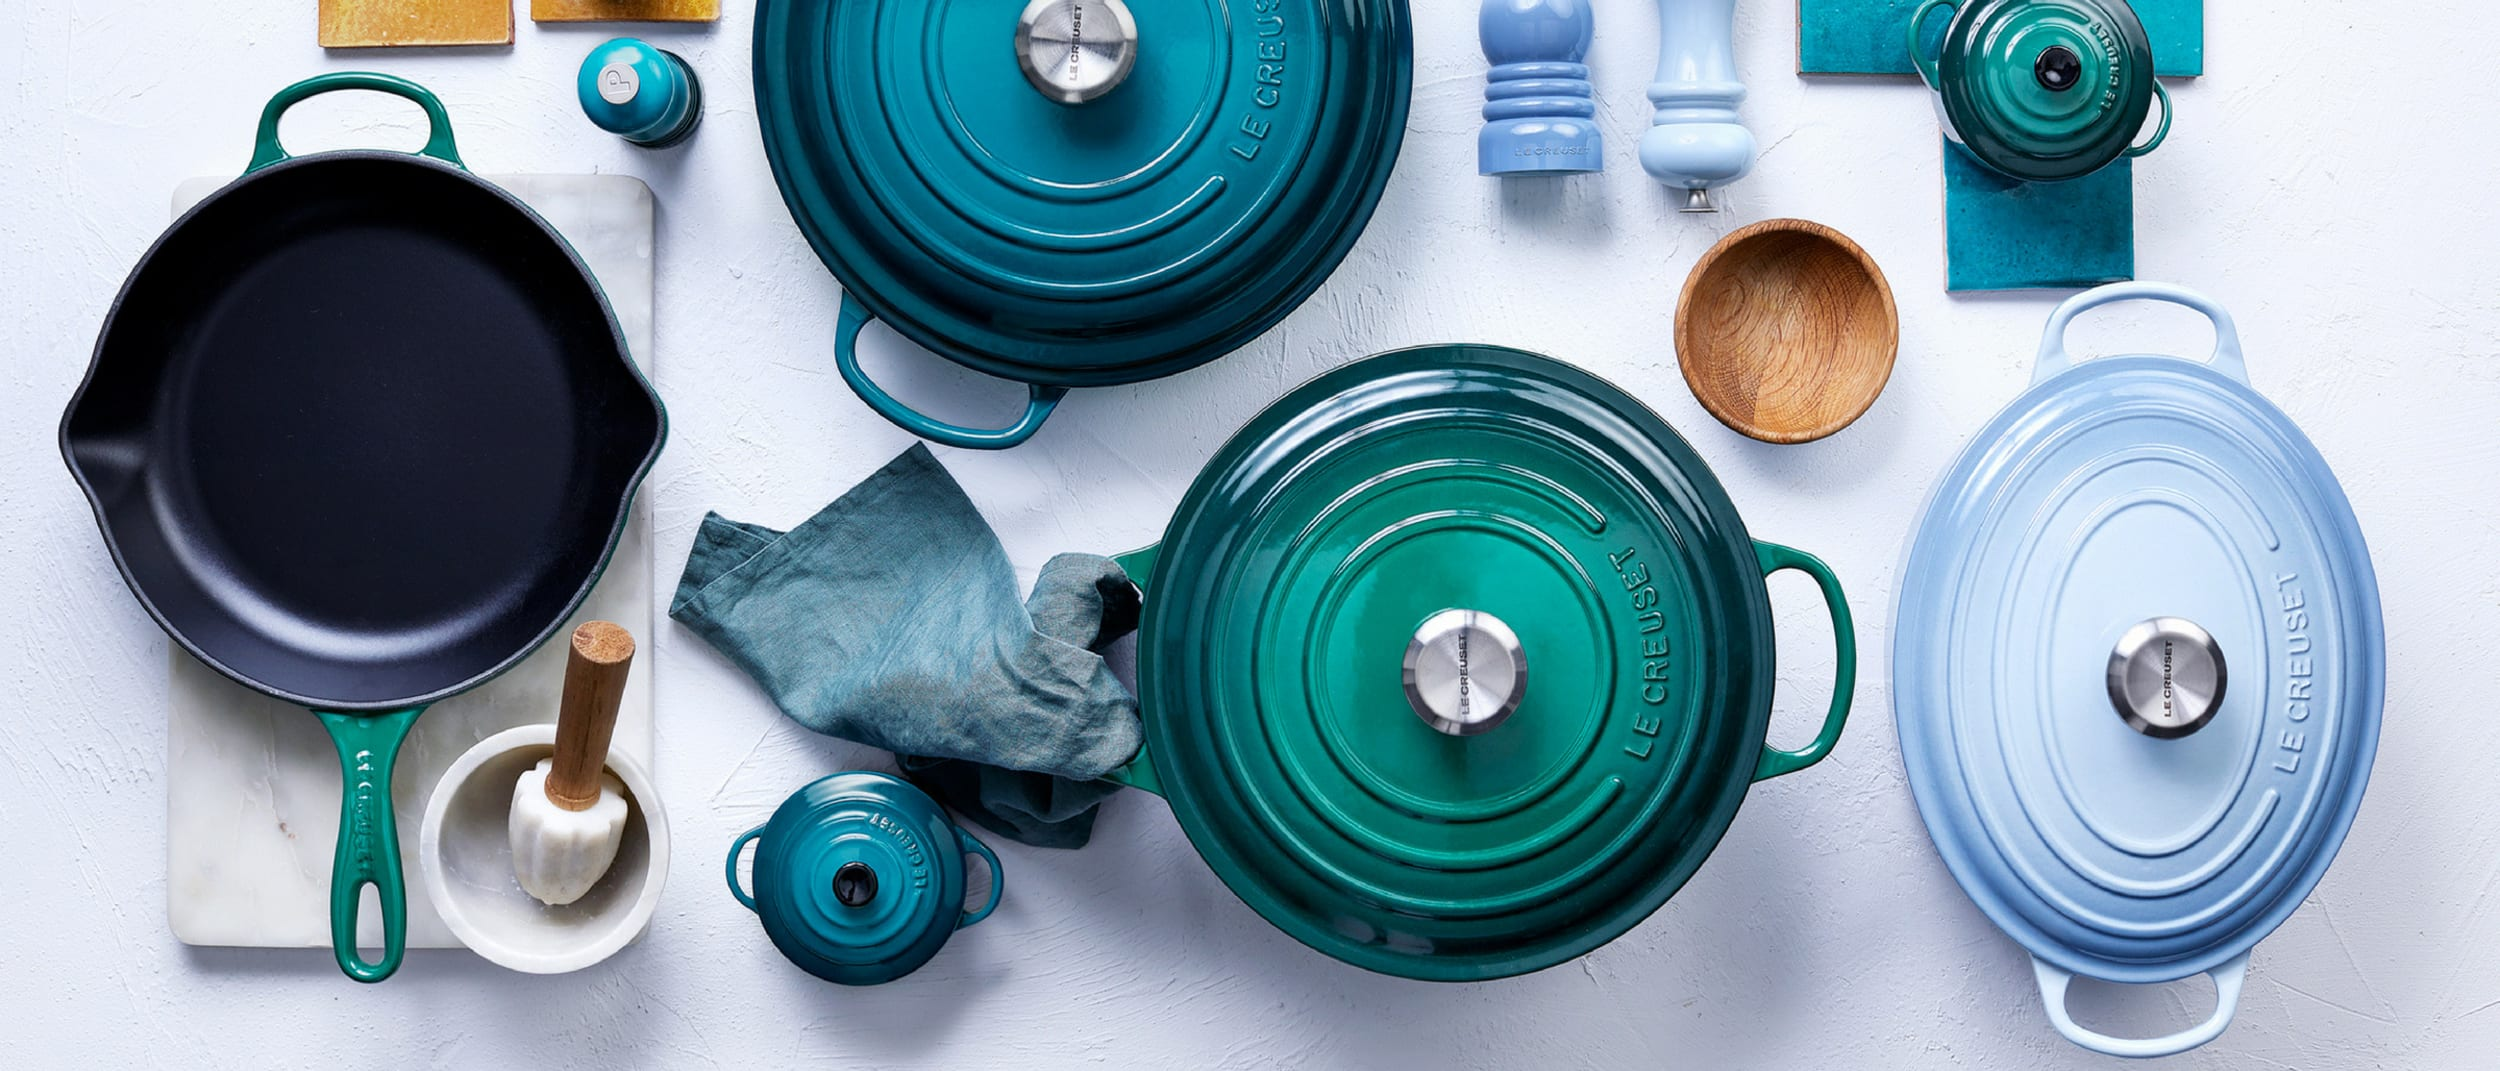 Essential kitchen classics worth investing in